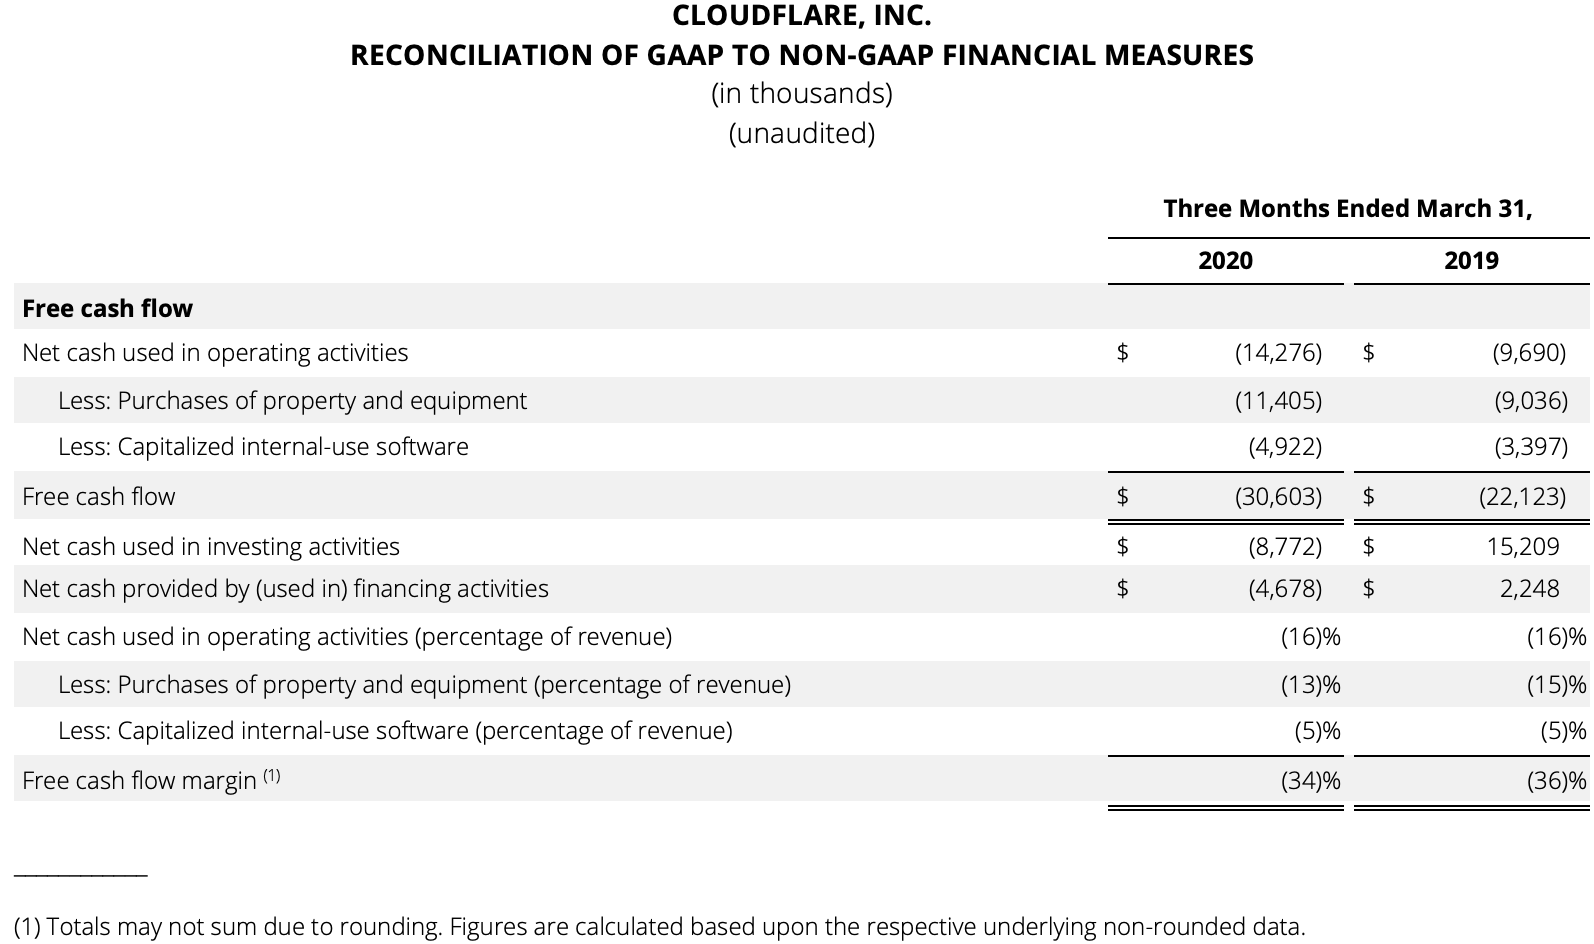 Reconciliation of GAAP 2